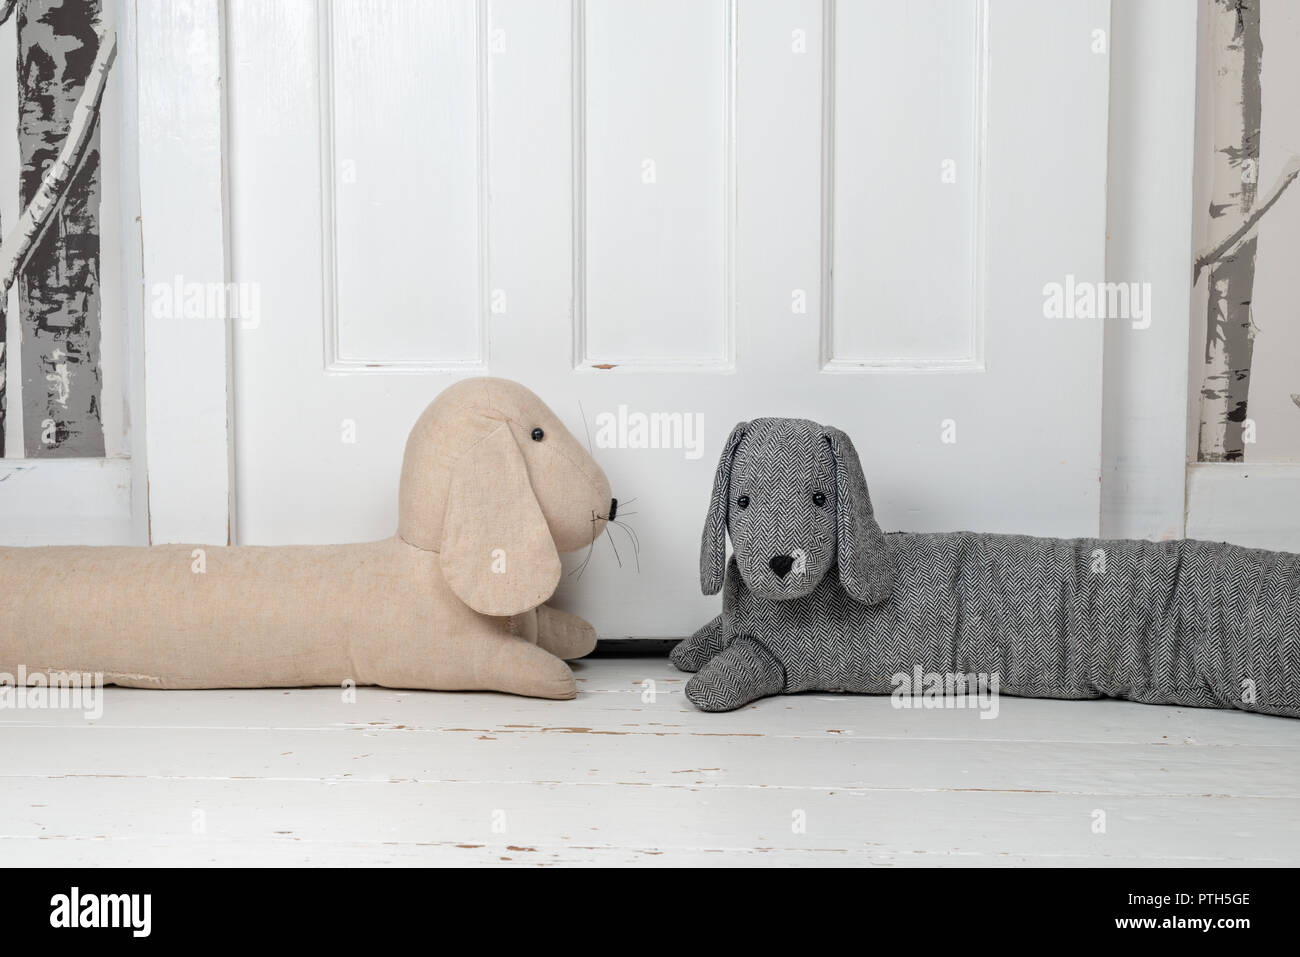 Two dog shaped draught excluders on a white painted wooden floor and in front of a door. - Stock Image